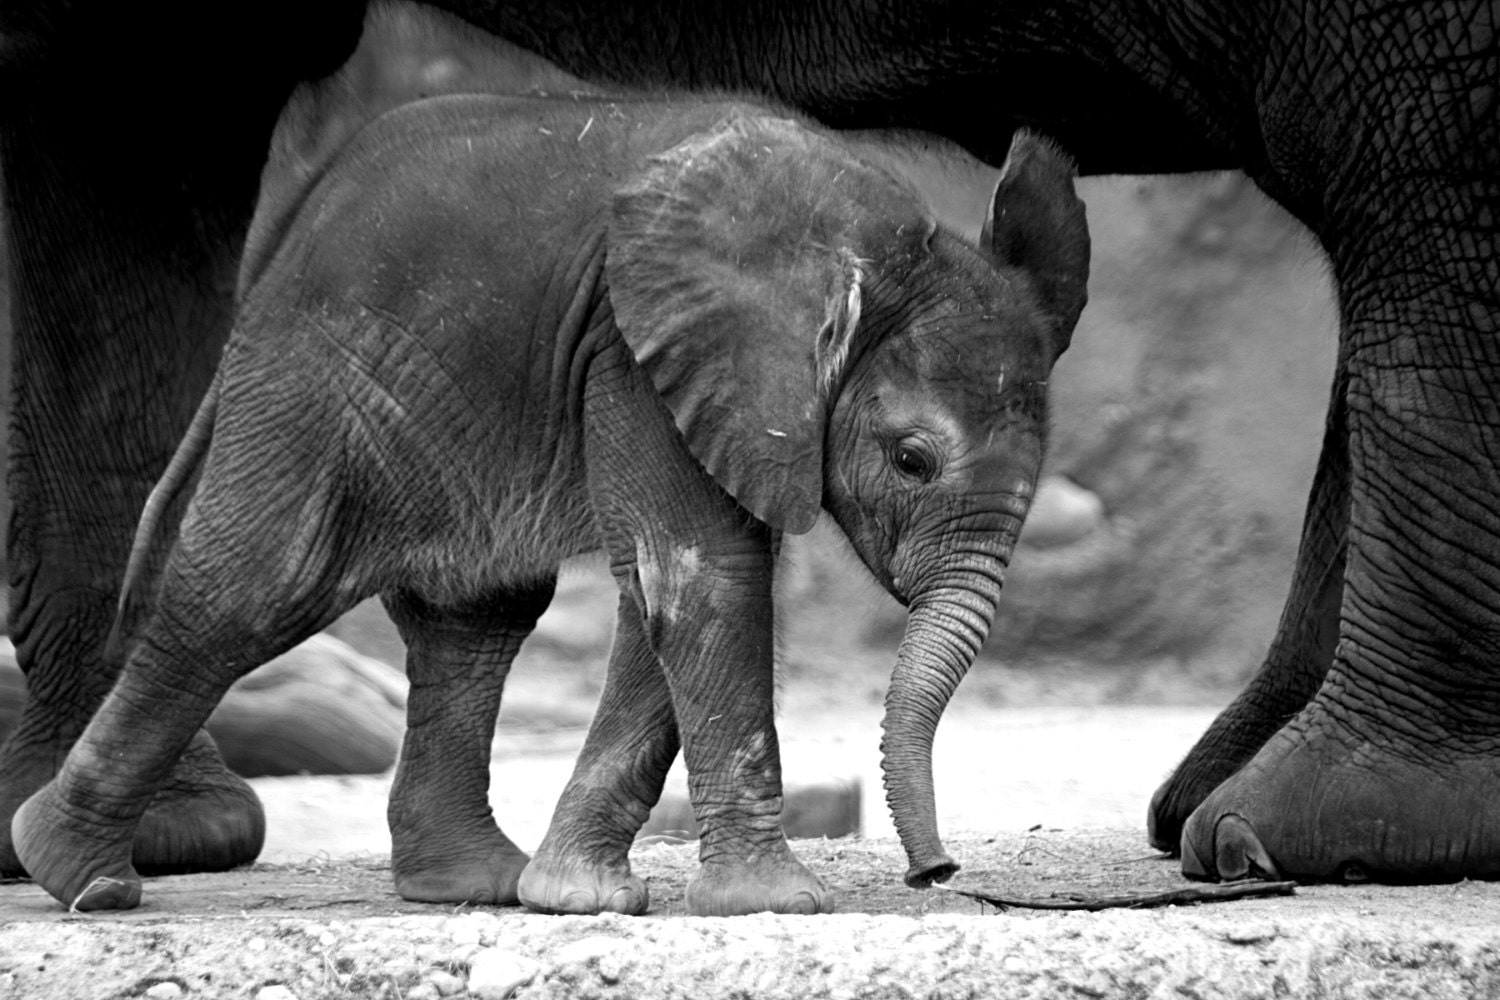 Baby Elephants Black And White Photograph Of Elephant InBaby Wallpaper